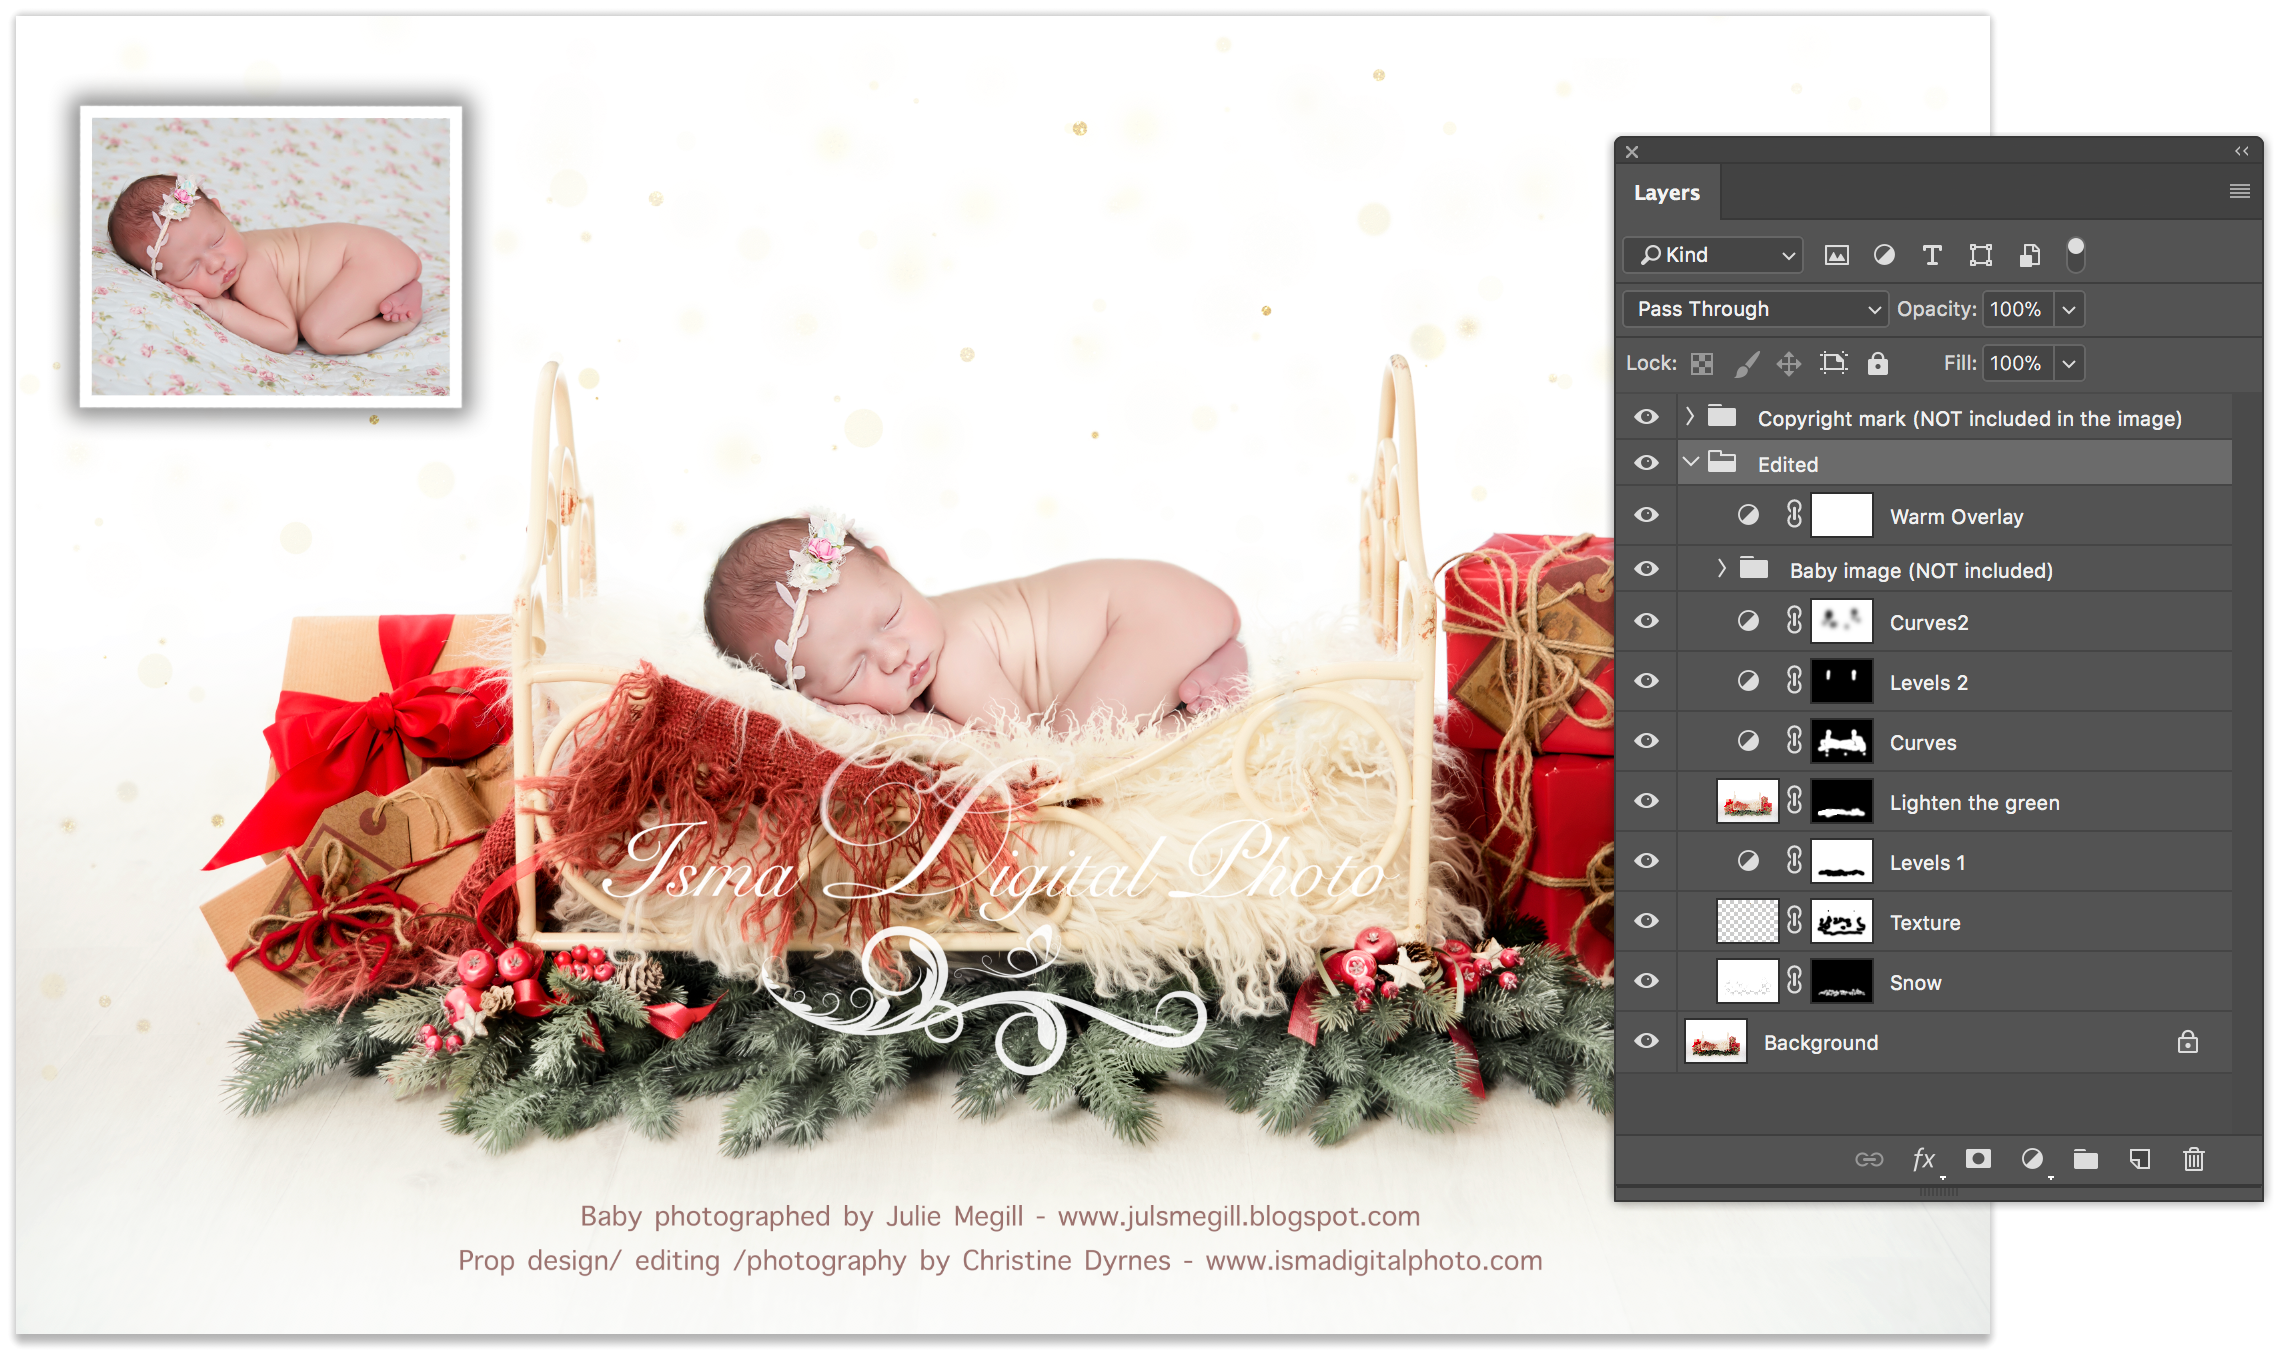 Digital Backdrop /Props for Newborn /baby photography - High resolution digital backdrop /background - one JPG and one PSD file with layers